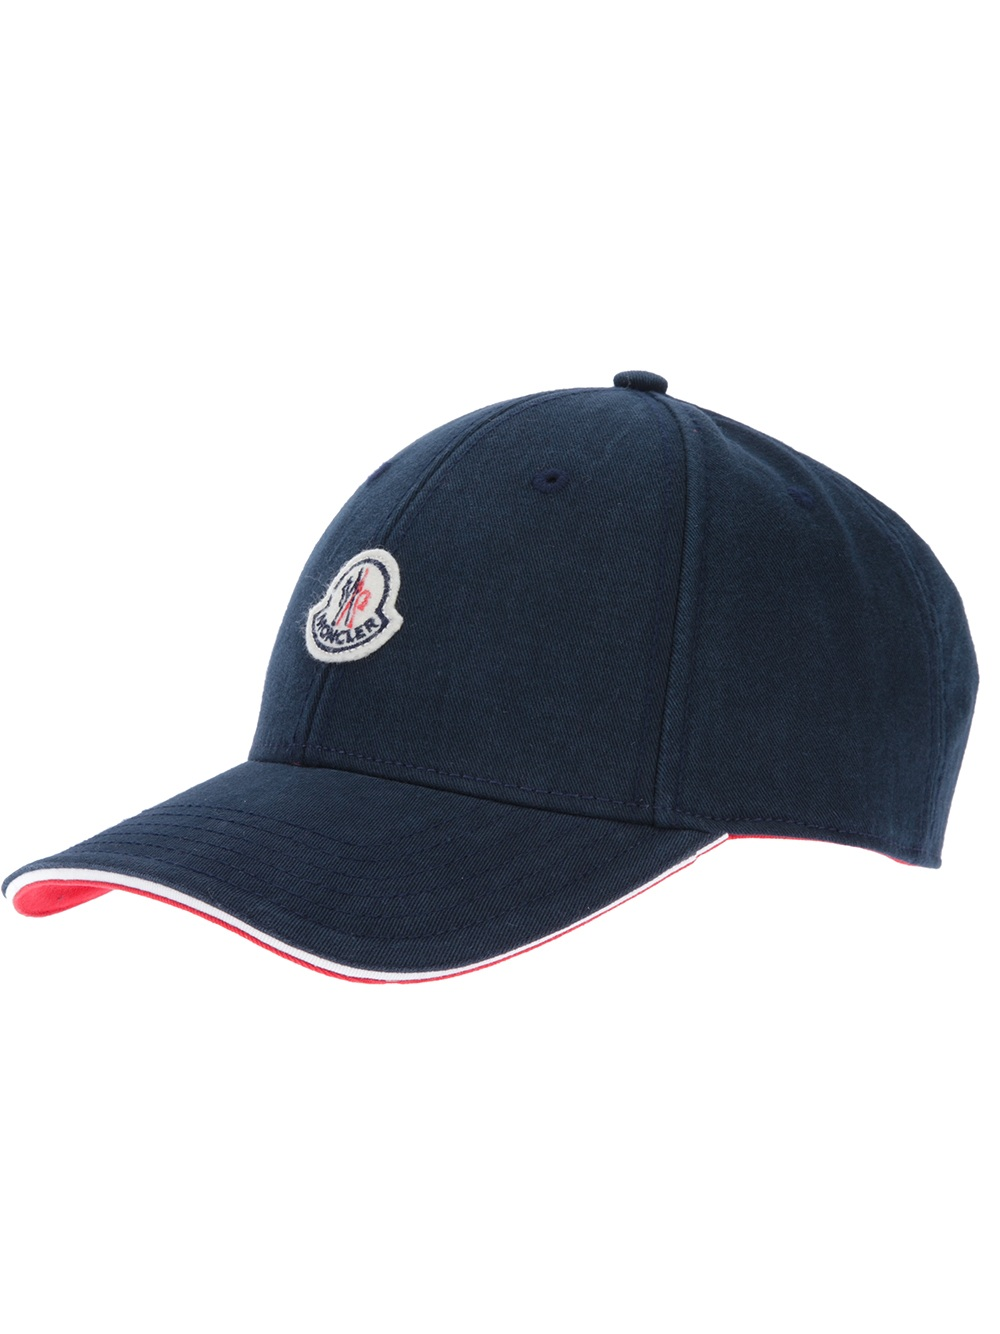 ad8616b7457d switzerland moncler hats navy 3d8dd c725a